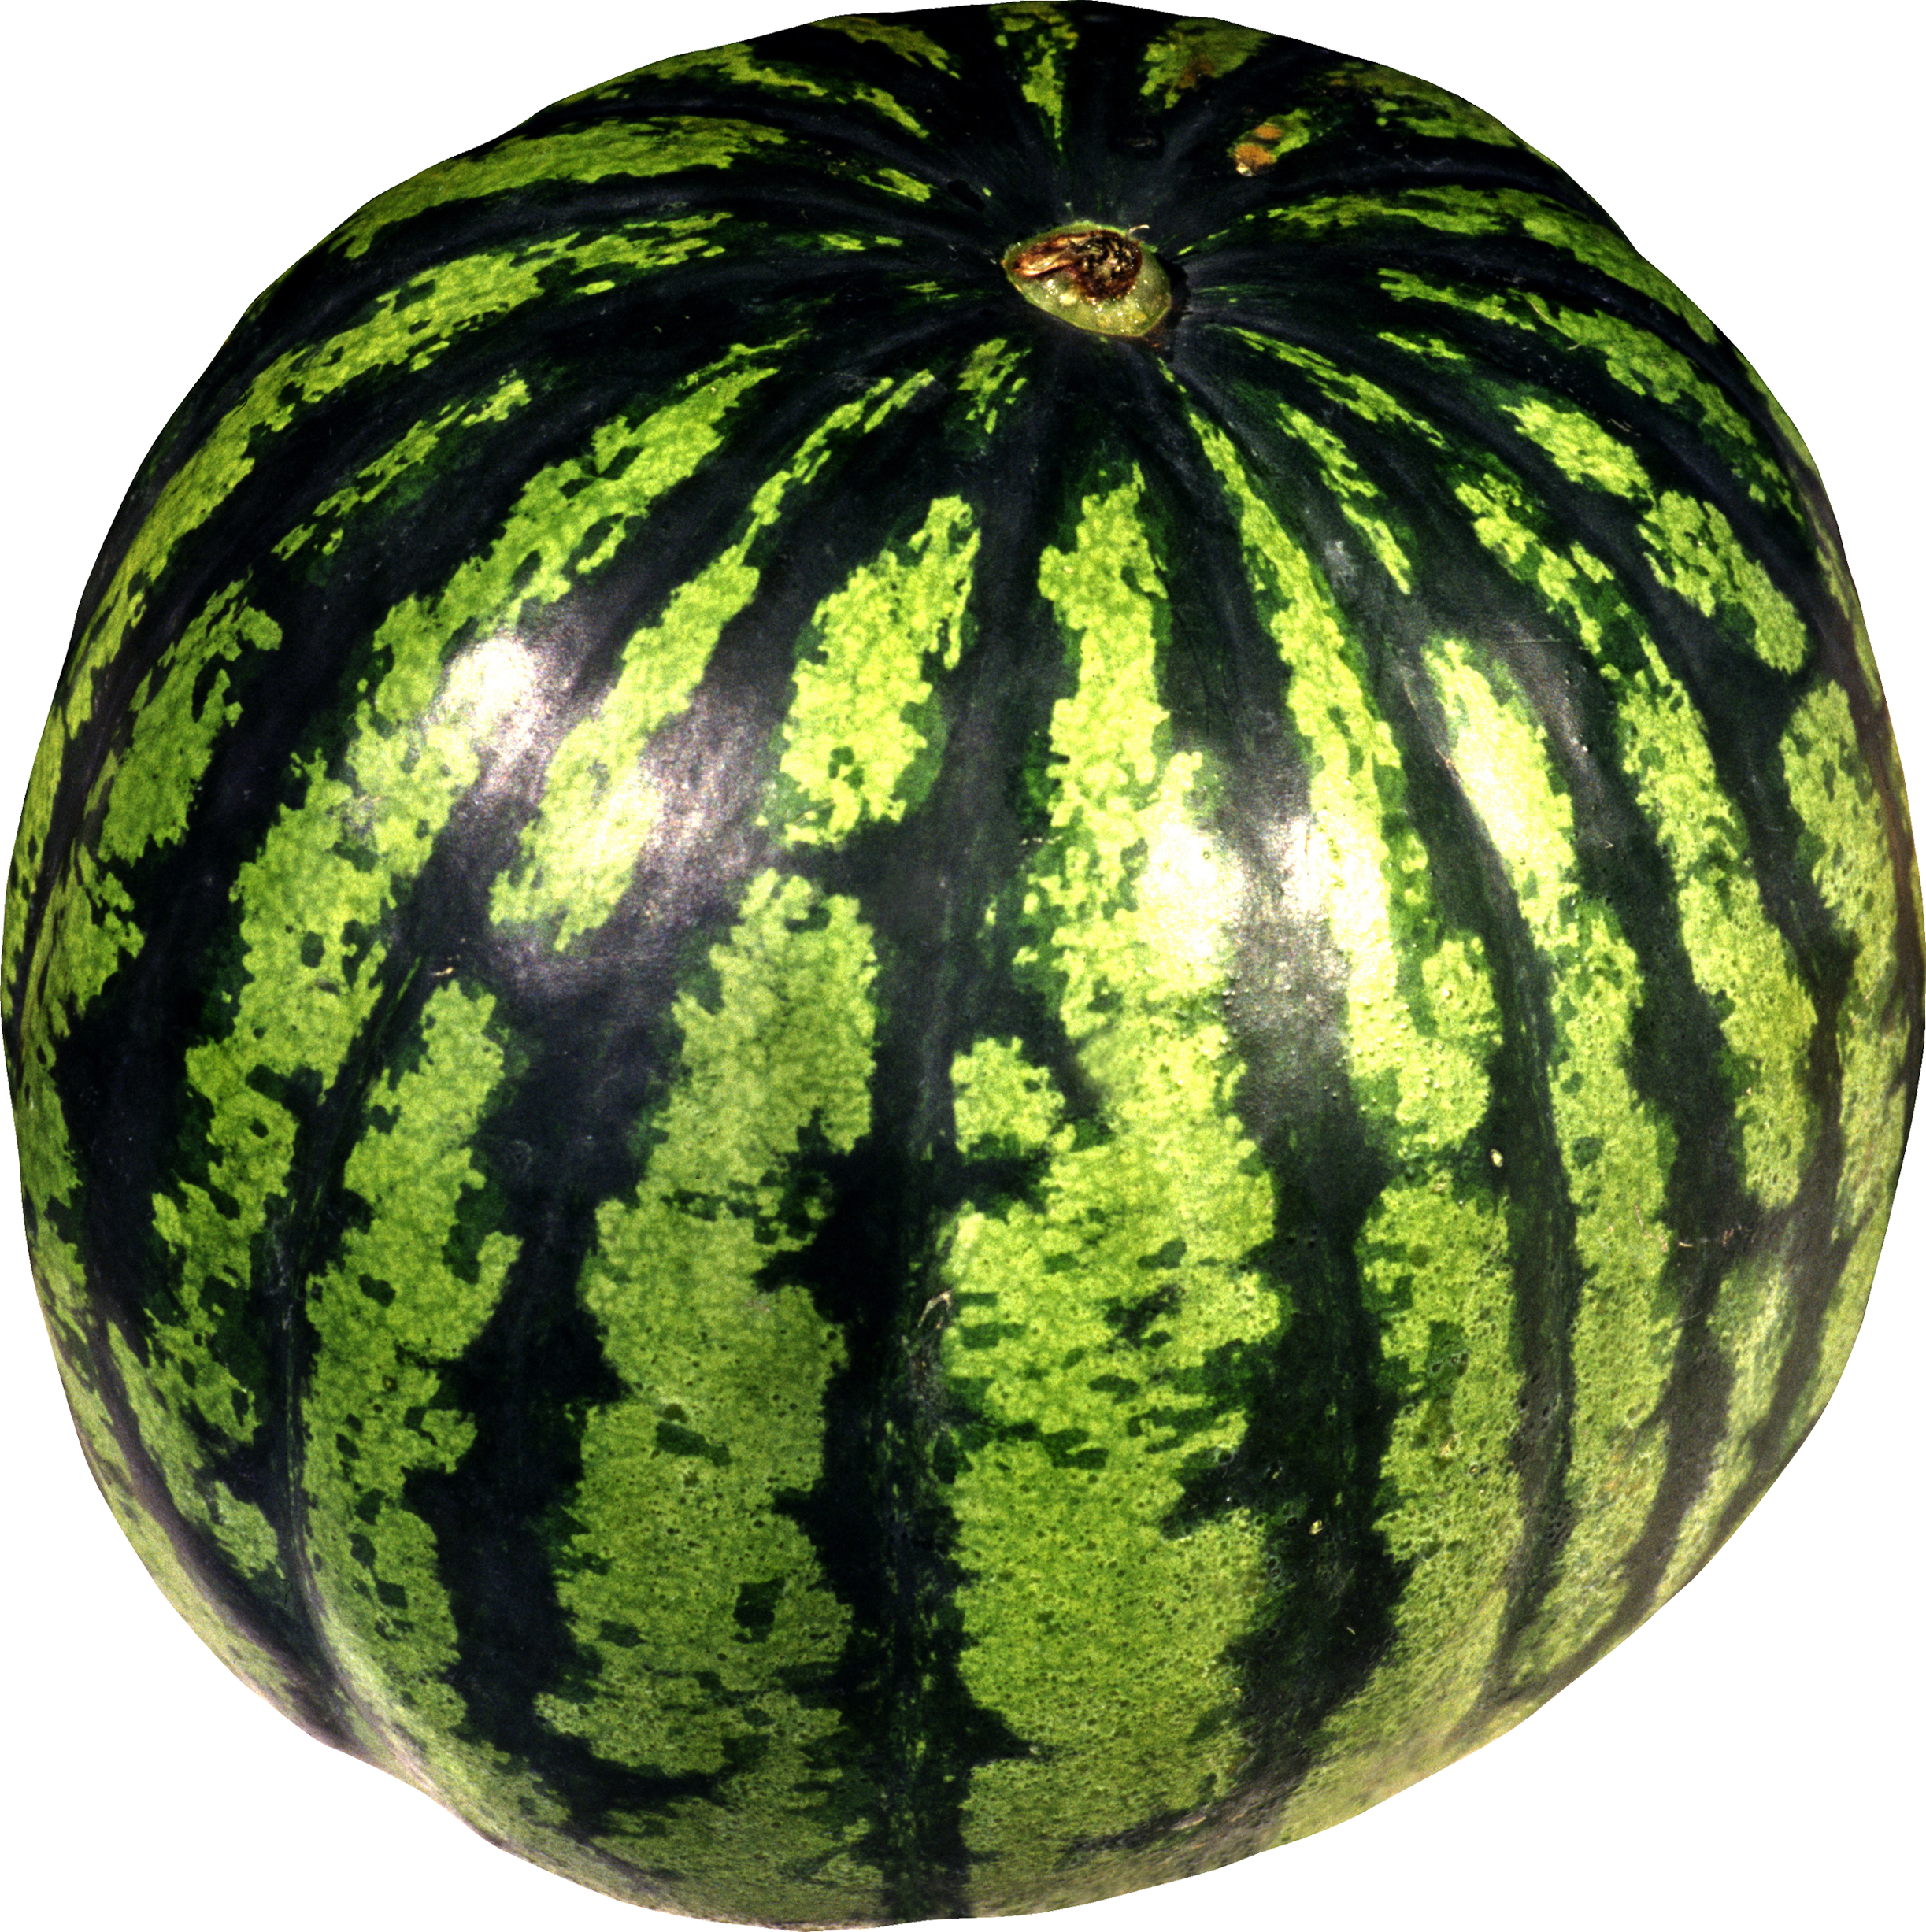 Watermelon clipart green fruit vegetable. Png images free download